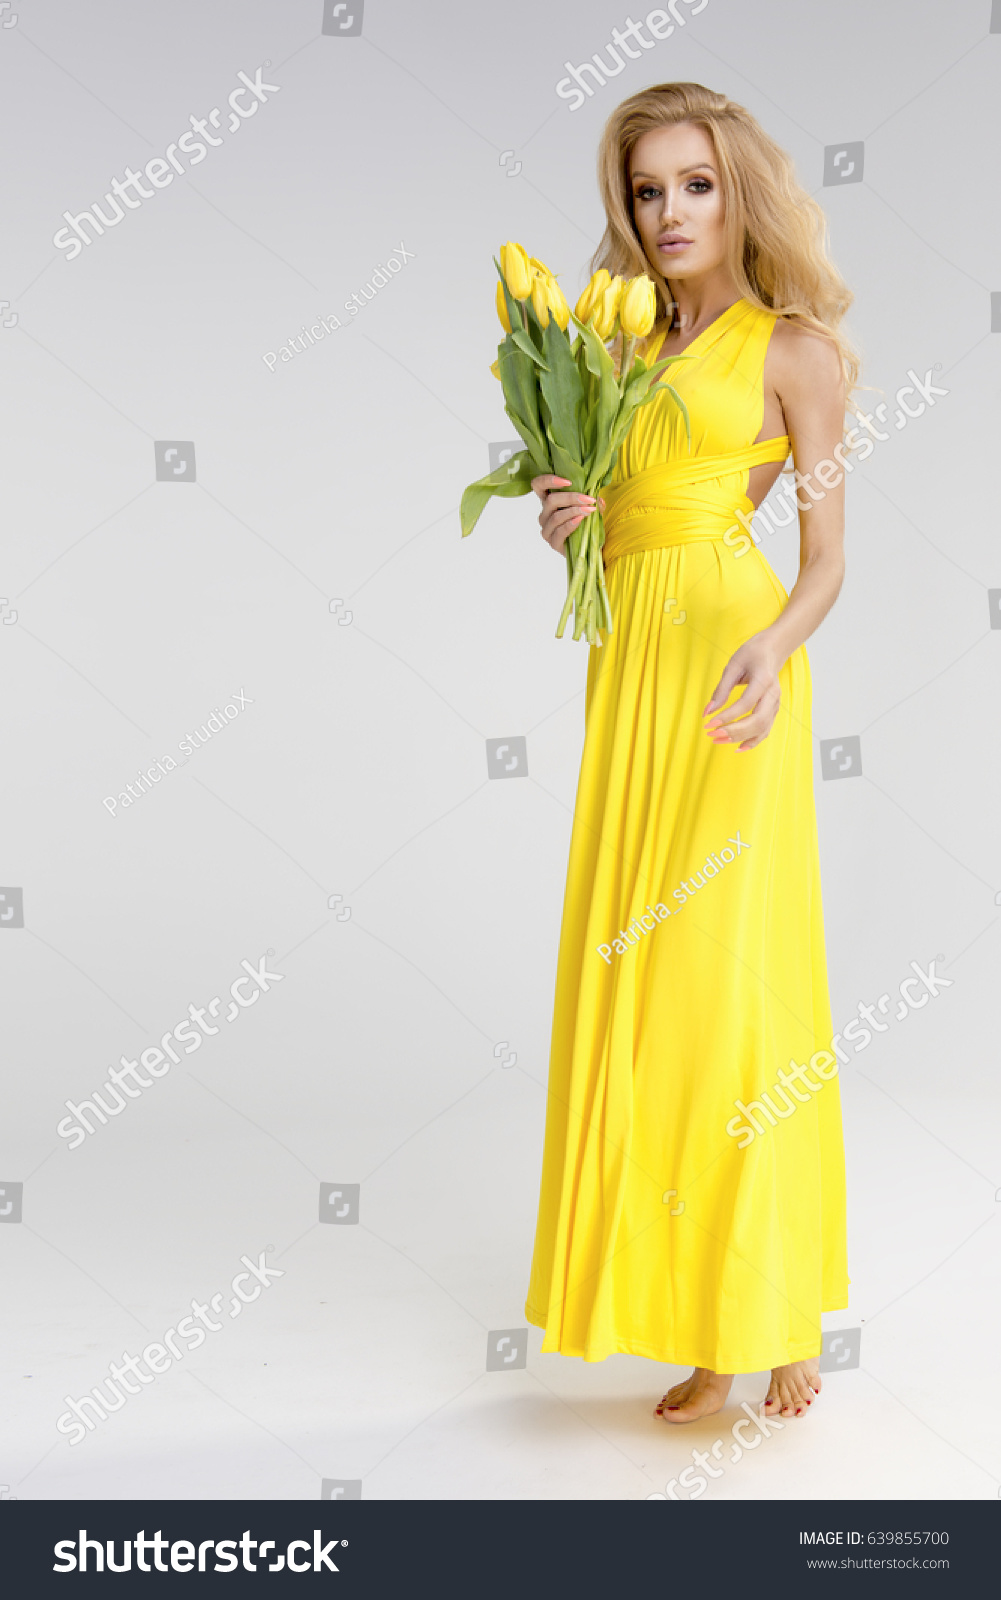 Beautiful Blonde Girl Yellow Dress Flowers Stock Photo Edit Now